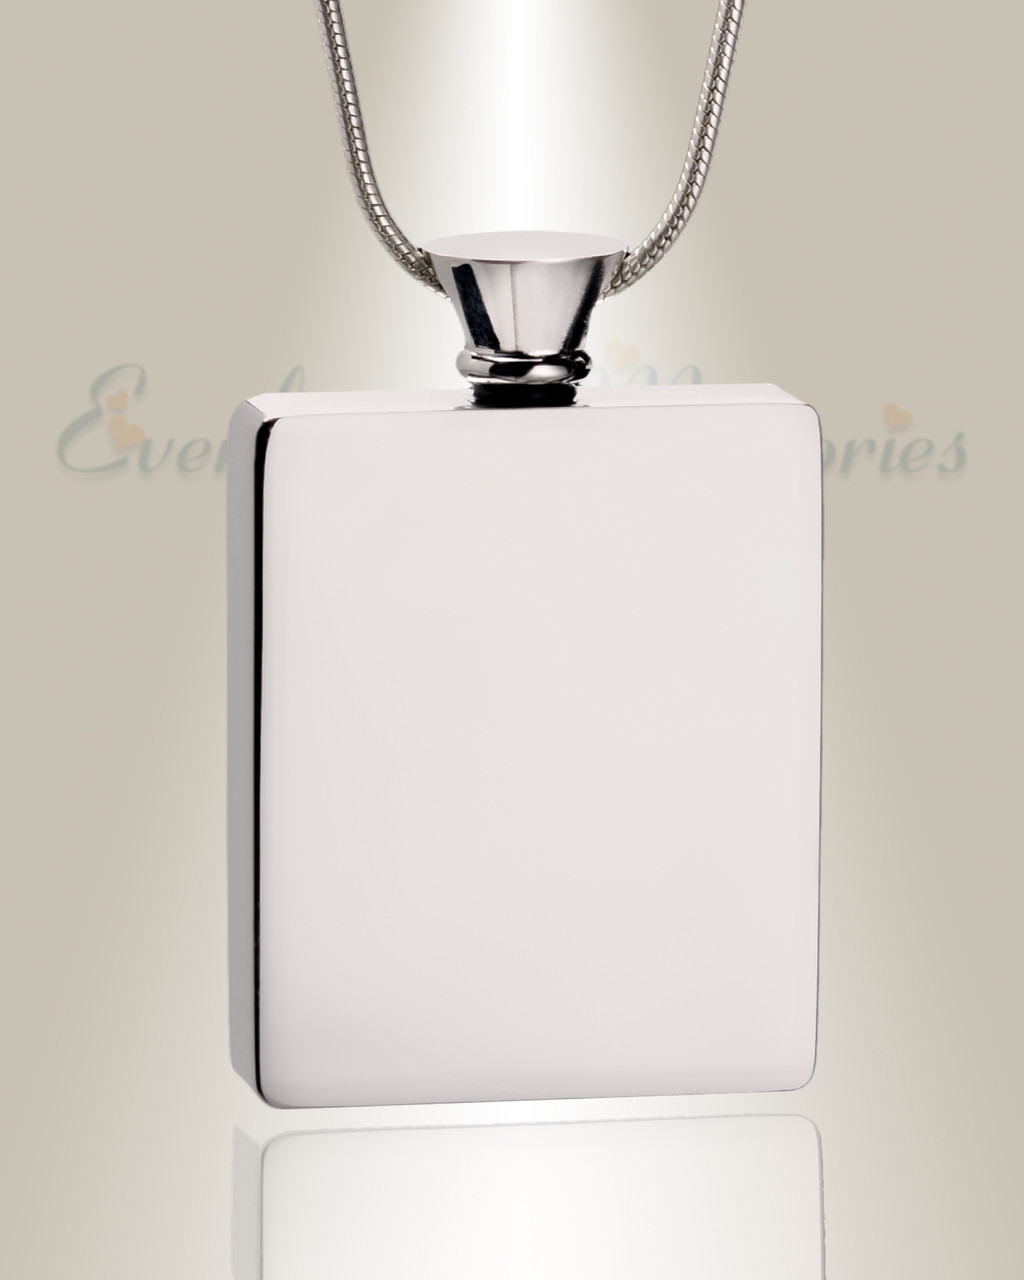 box gift urn zz crystal beautiful pendant ashes for cremation necklace products with img wh jewelry